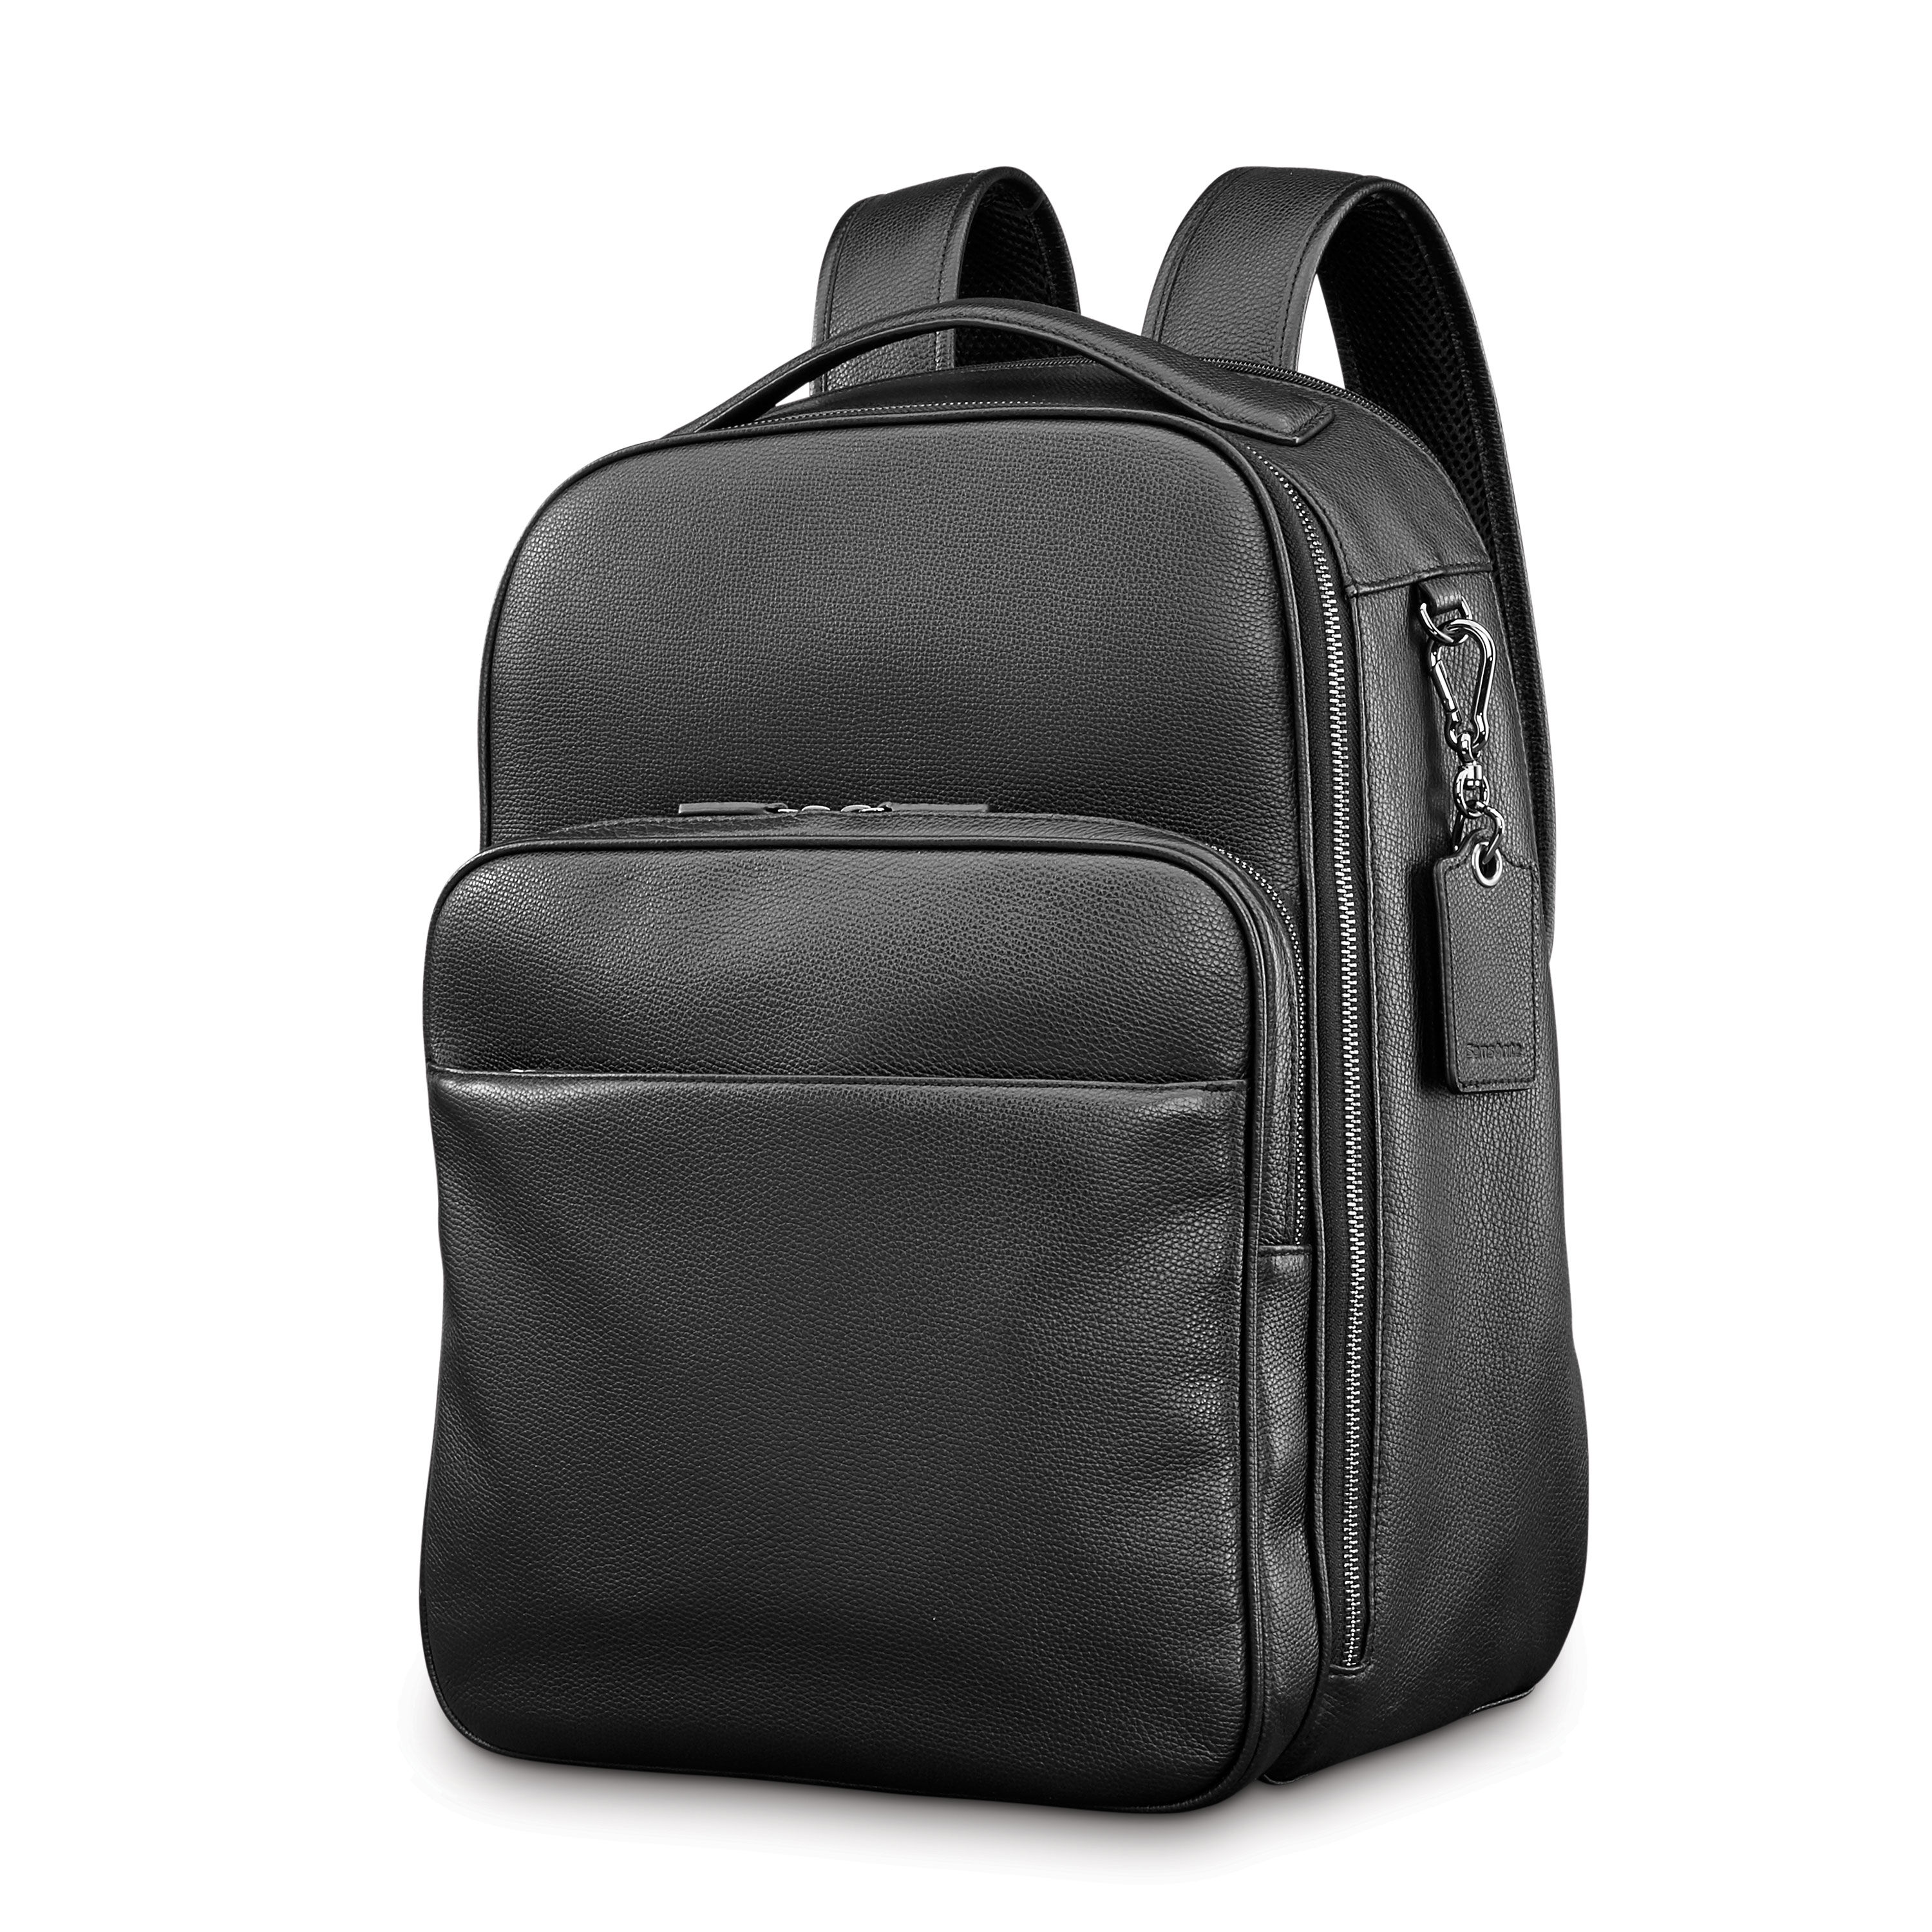 High Quality Seventeen 17 Luminous Backpack Rucksacks Student School Travel Bags Daypack Laptop Bag Luggage & Bags